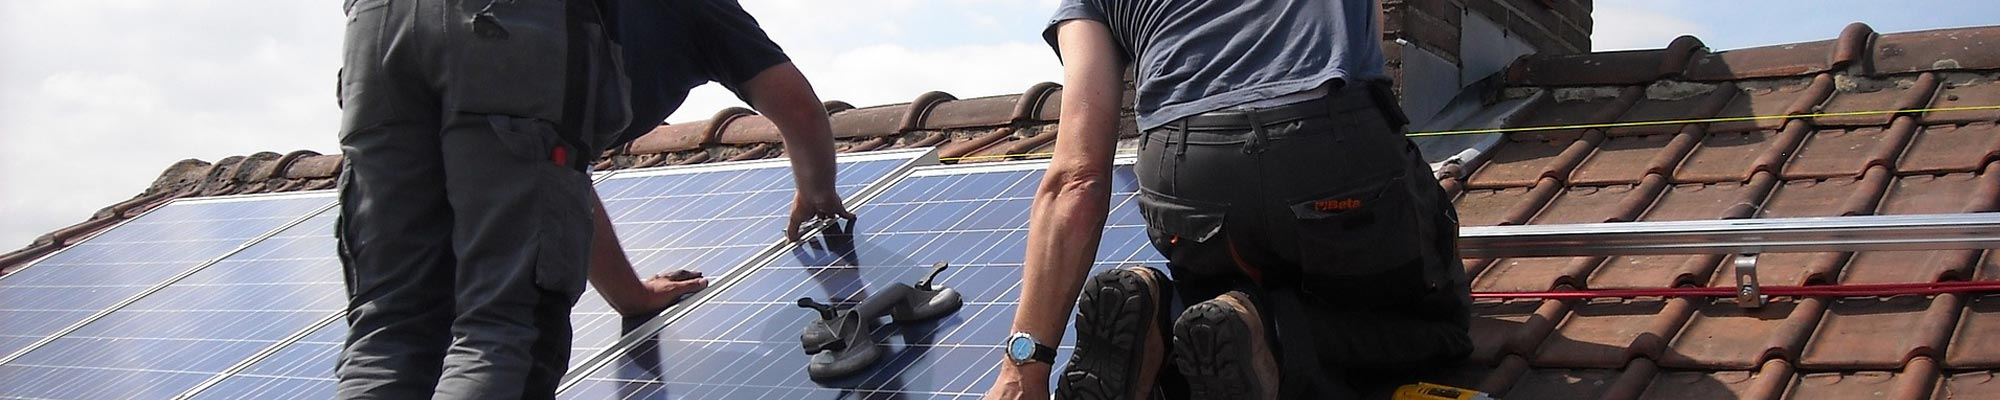 Solar Photo Voltaic Panels (PV) - Electricians in Reading